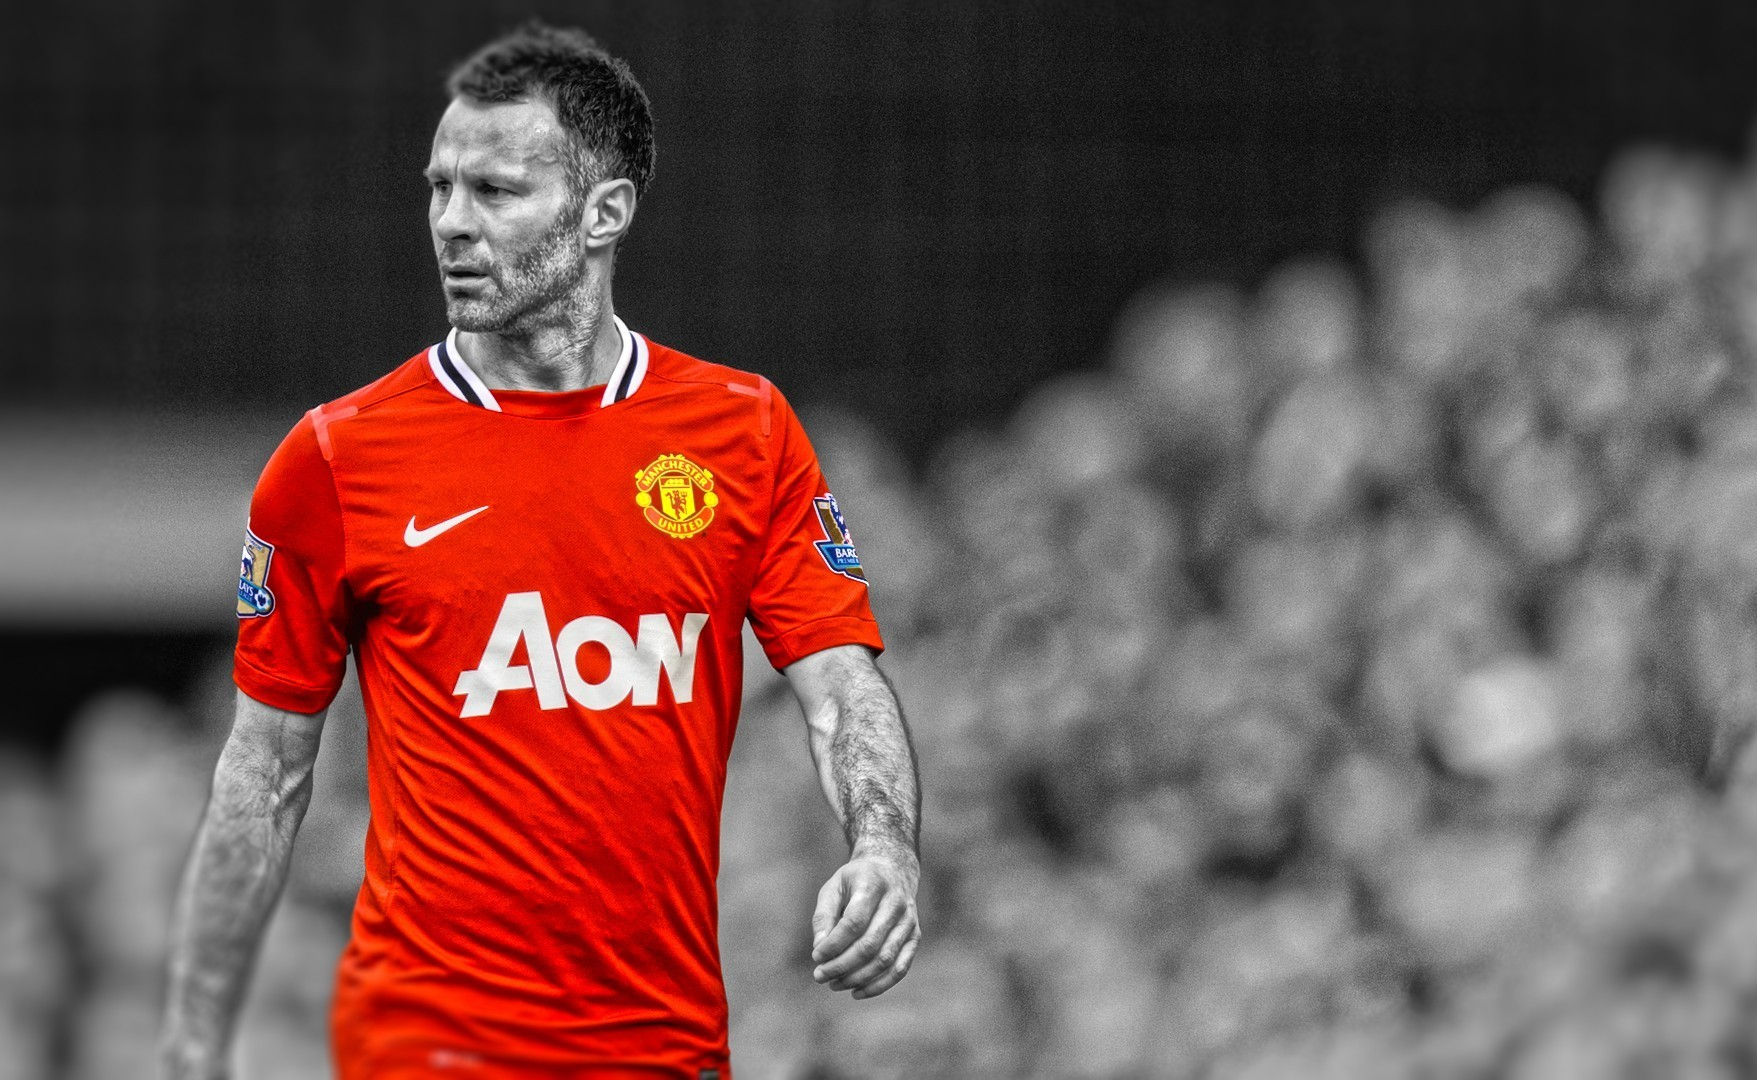 1ryan-giggs-fb.jpg (419.54 Kb)